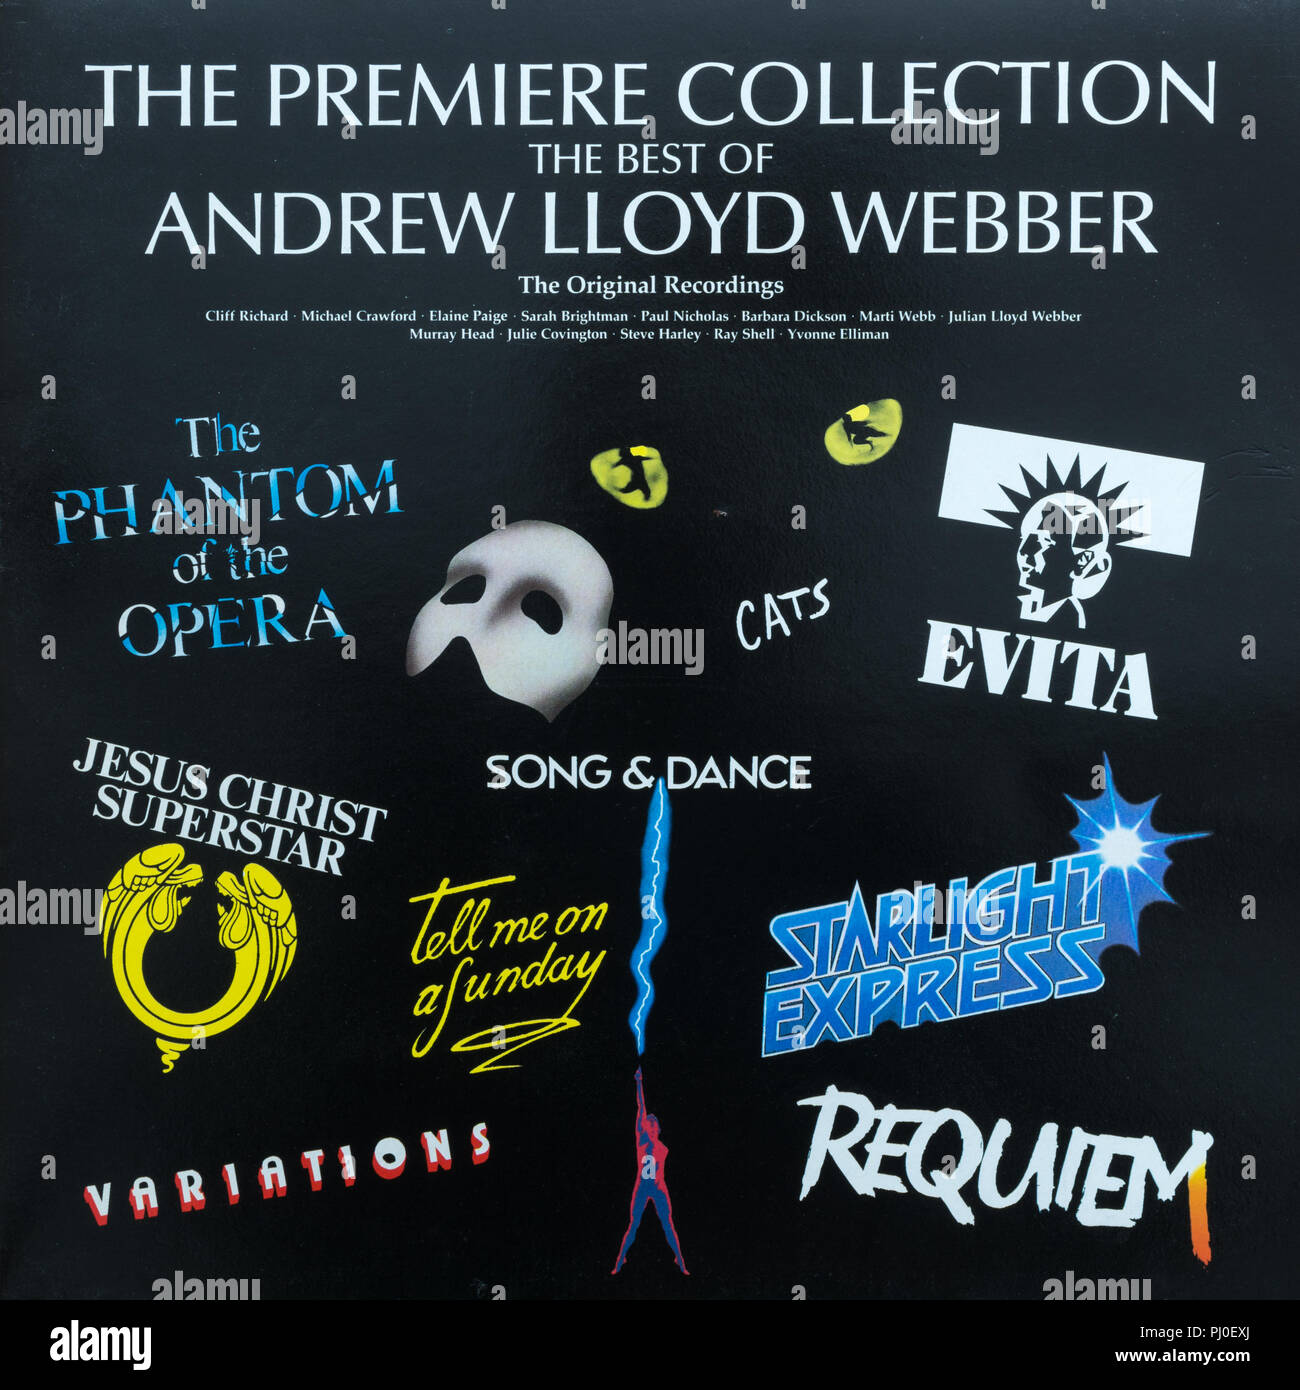 The Premiere Collection: The Best of Andrew Lloyd Webber compilation album cover - Stock Image